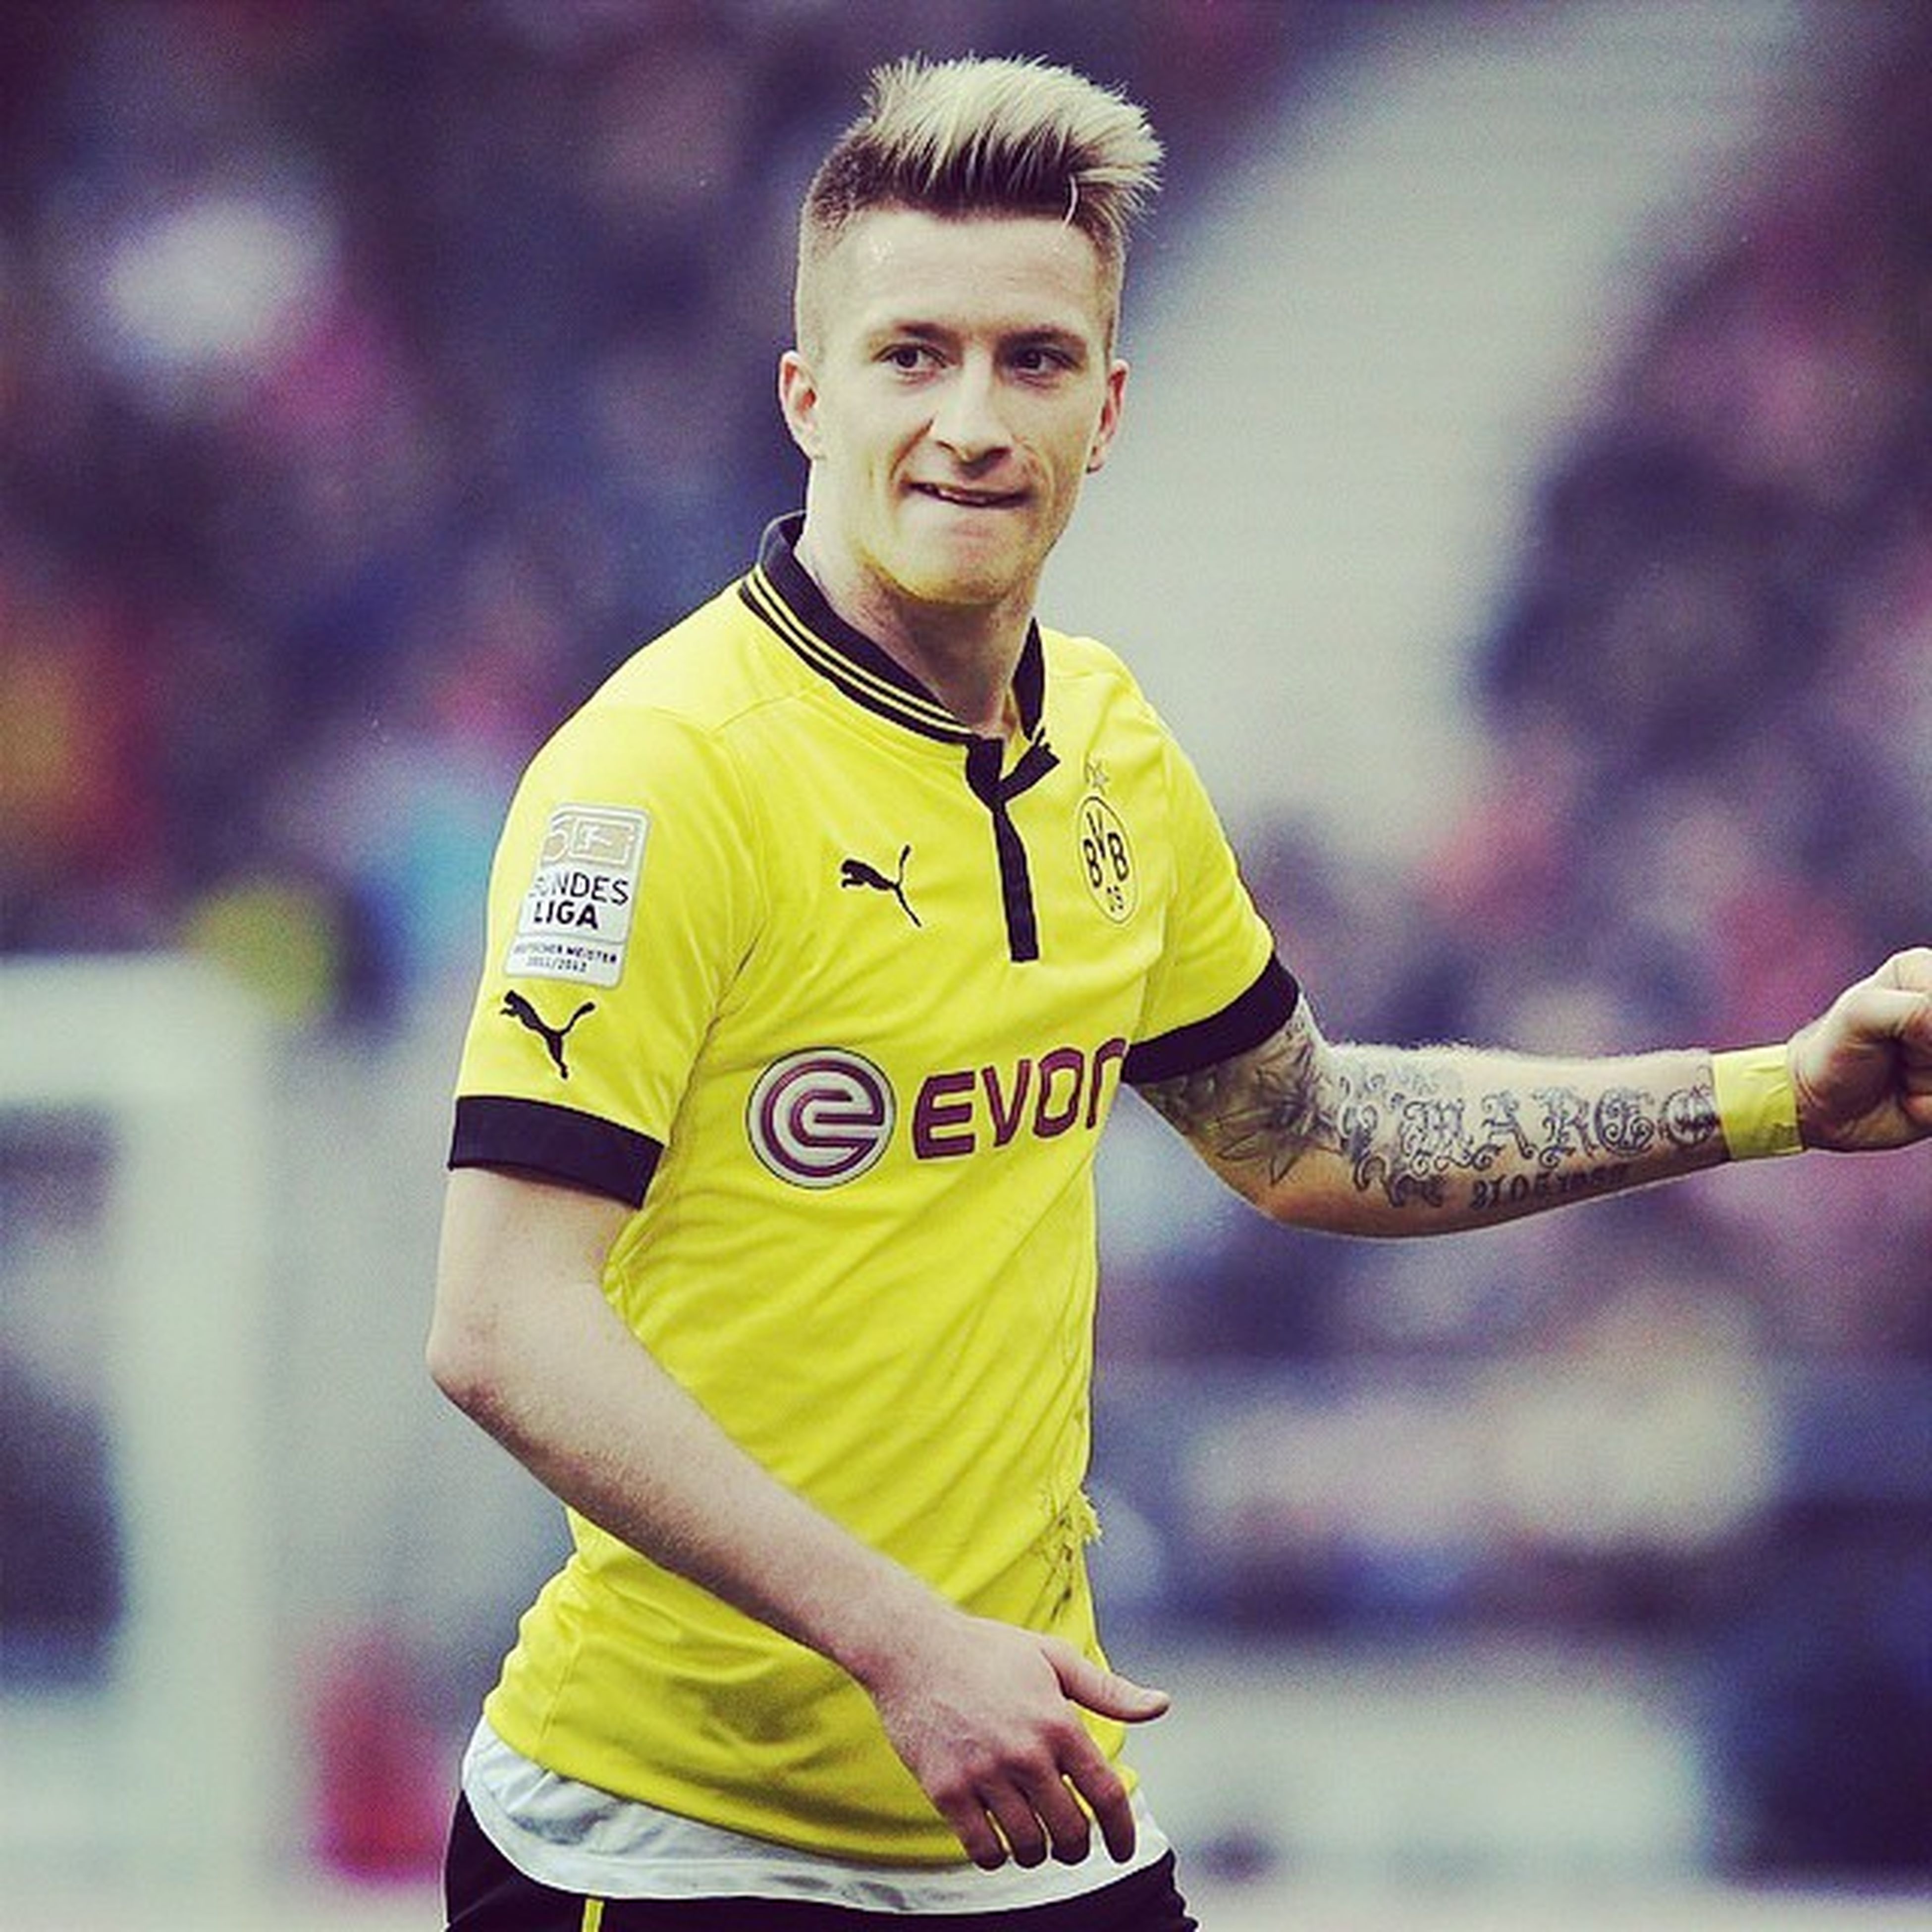 If u know him just double tap Marco21 Marco_reus Reusearmy Reustragam reusdailyfans reuse dailyreuse best page top photo life instragam facebook world cup champions Bvb bvb_dortmunt bvb Dortmund stars star player reuslovers like him join with @heart_cooler waiting for Best results football lovers follow me I will follow u come on